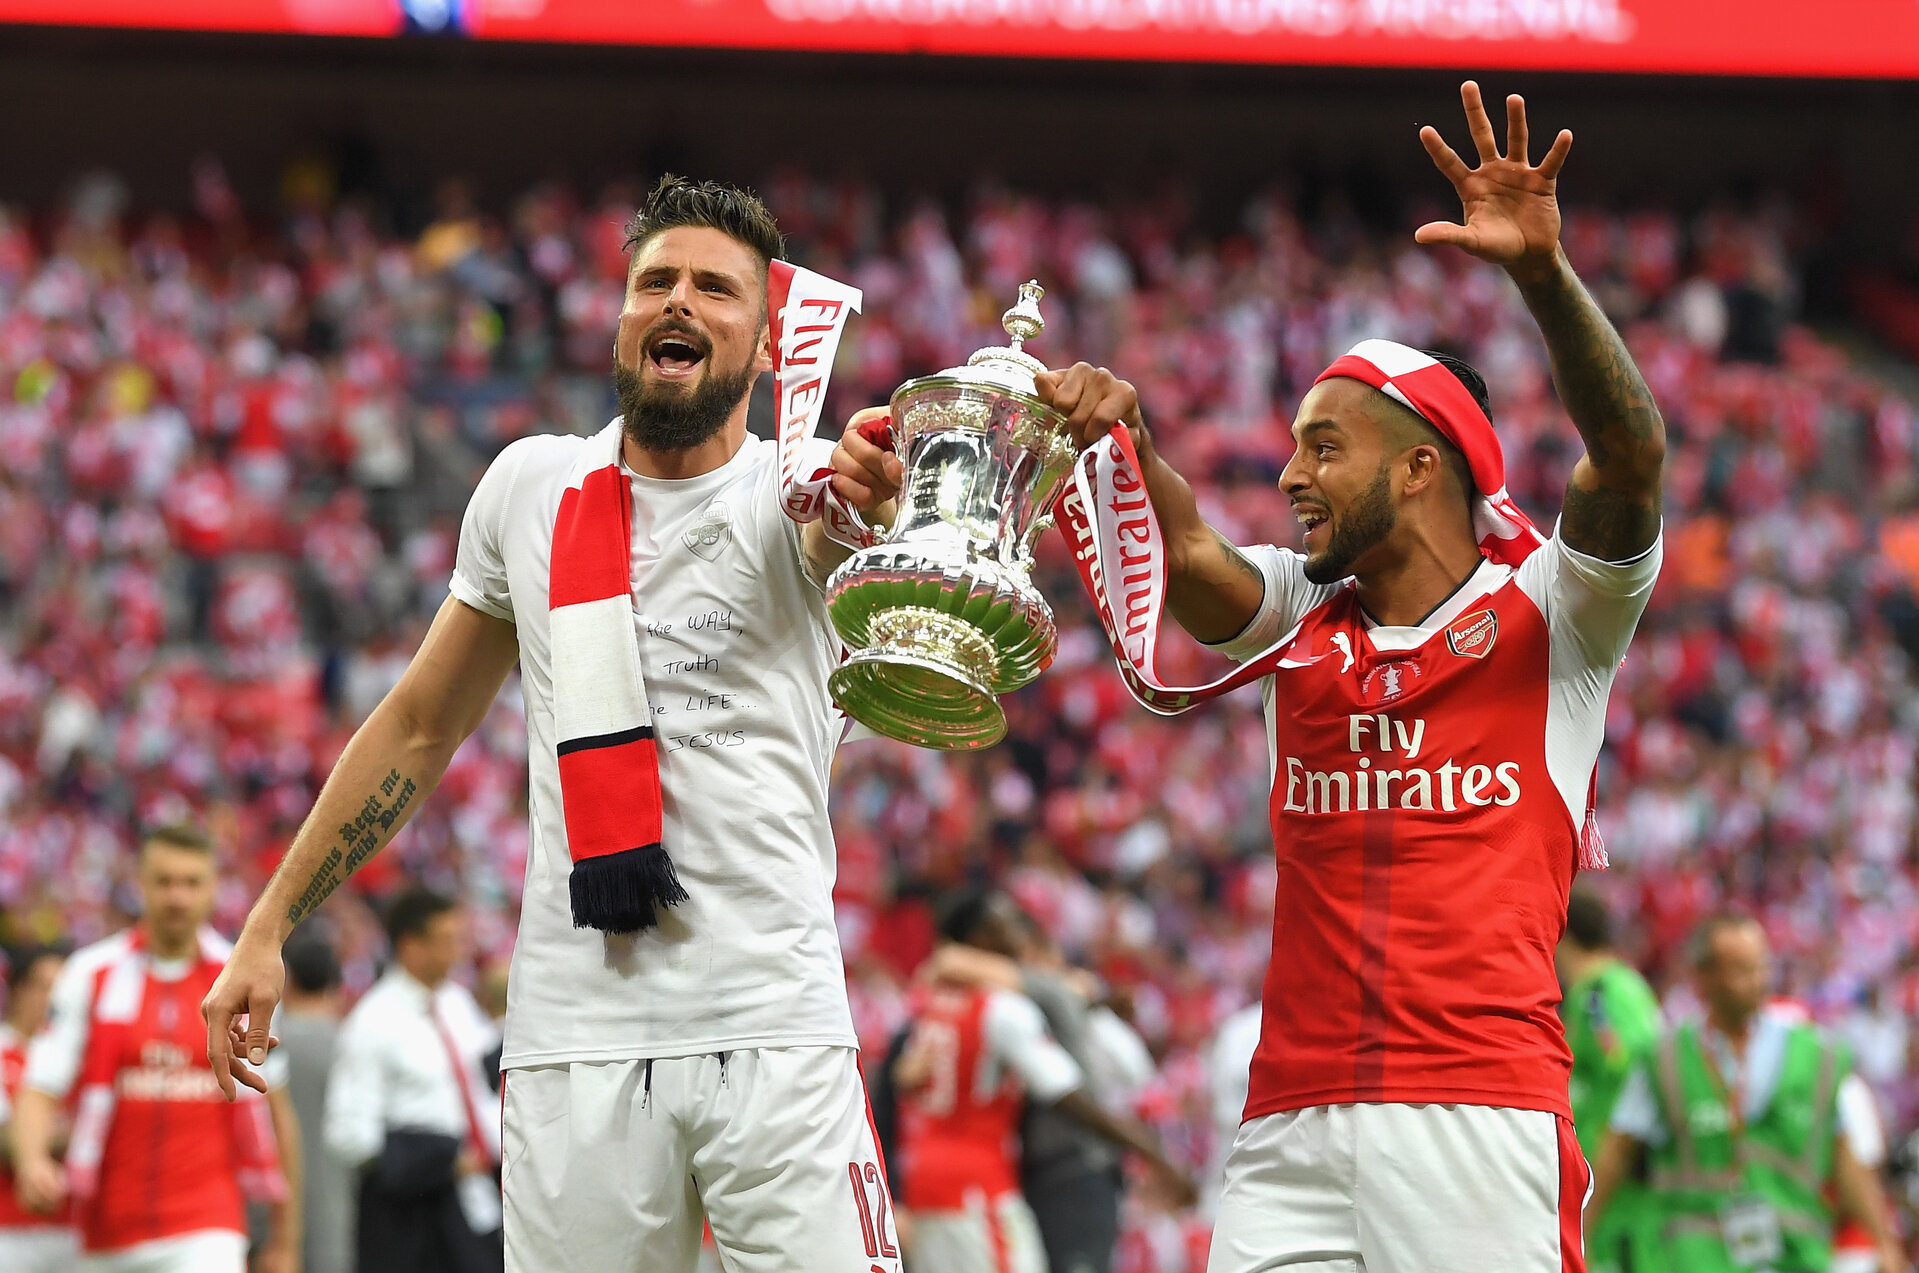 LONDON, ENGLAND - MAY 27: Olivier Giroud of Arsenal and Theo Walcott of Arsenal celebrate with the trophy after The Emirates FA Cup Final between Arsenal and Chelsea at Wembley Stadium on May 27, 2017 in London, England.  (Photo by Laurence Griffiths/Getty Images)